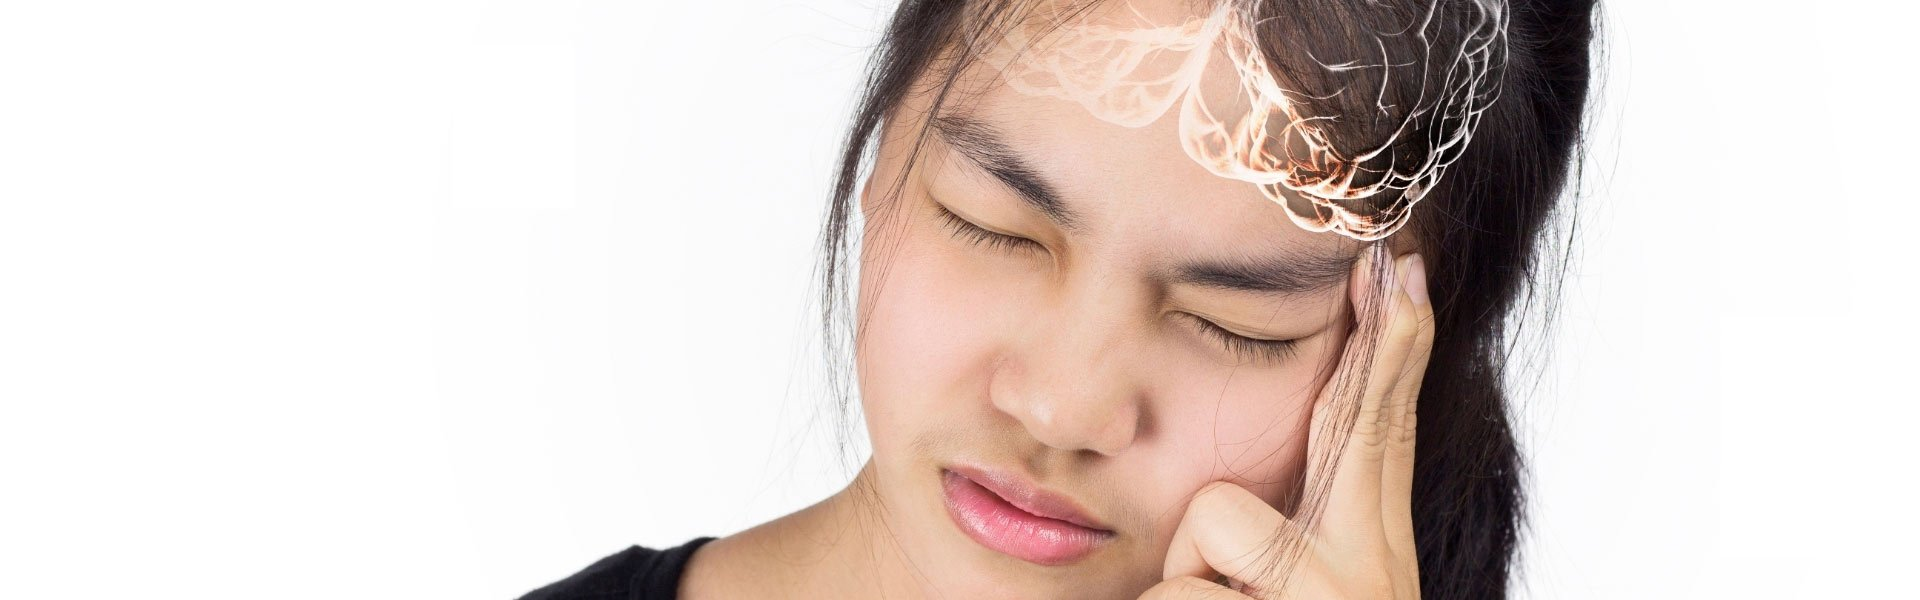 COVID-19 effects of stress